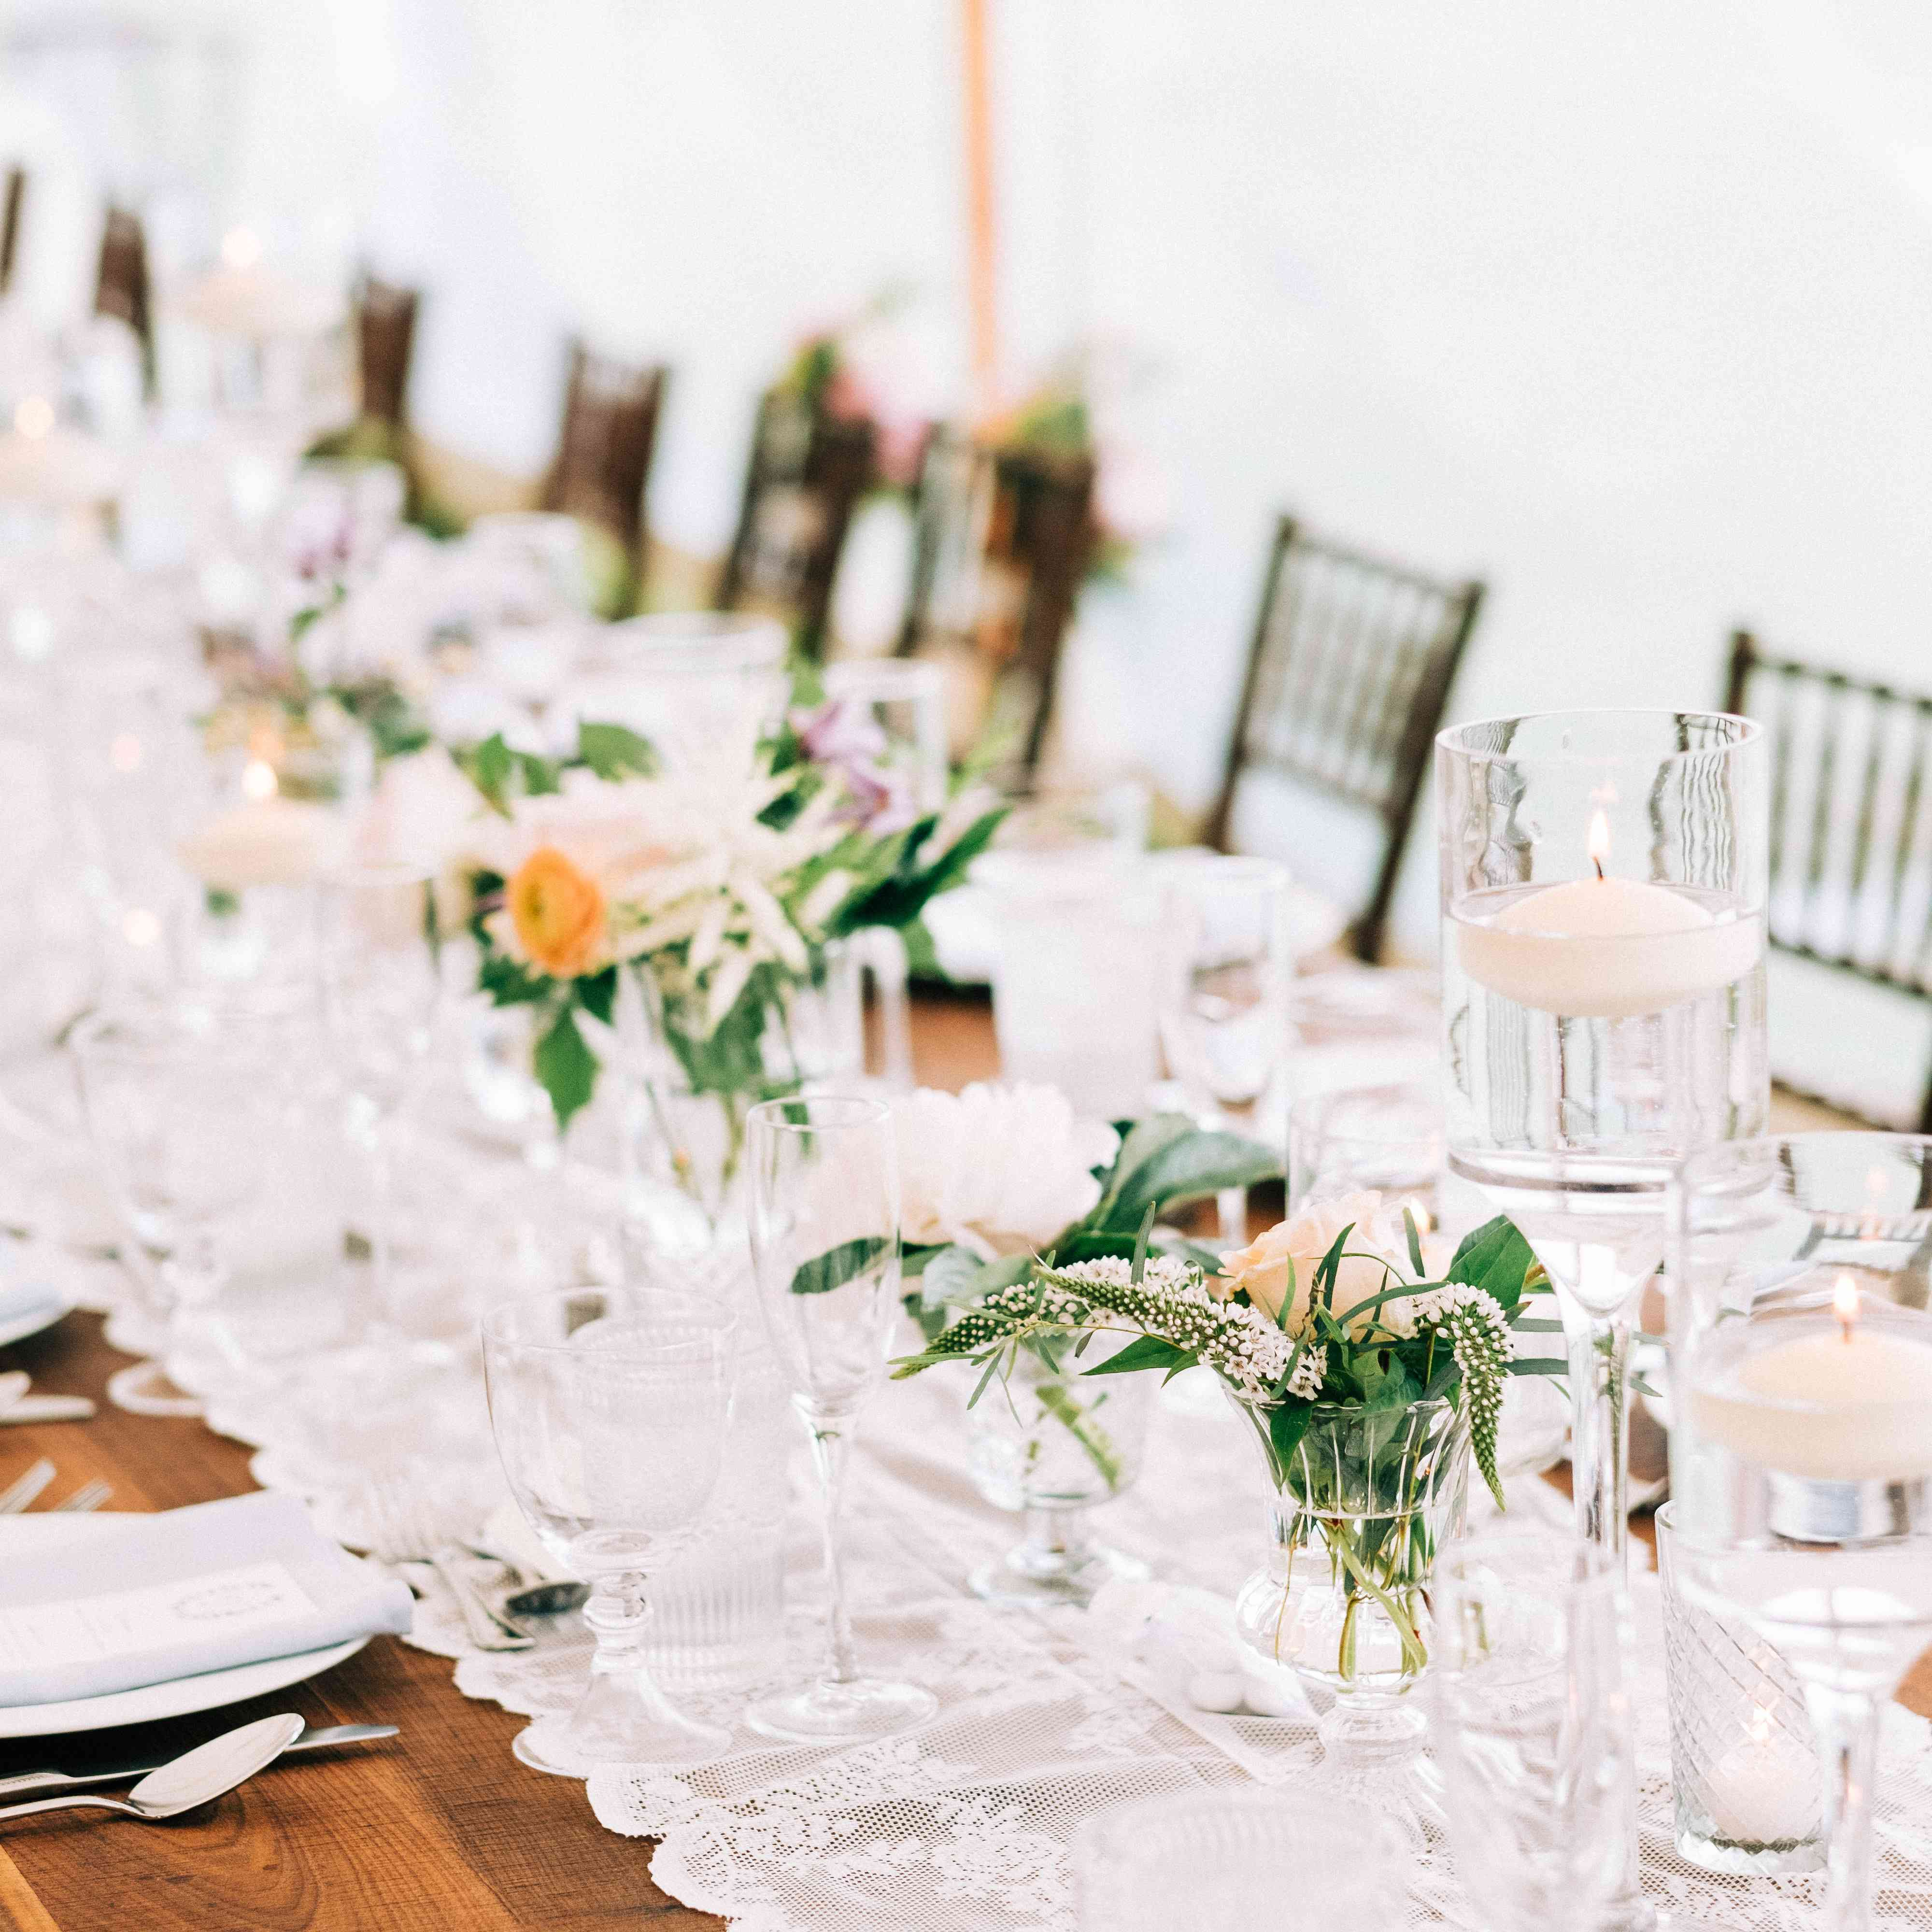 <p>simple tablescape table runner</p><br><br>